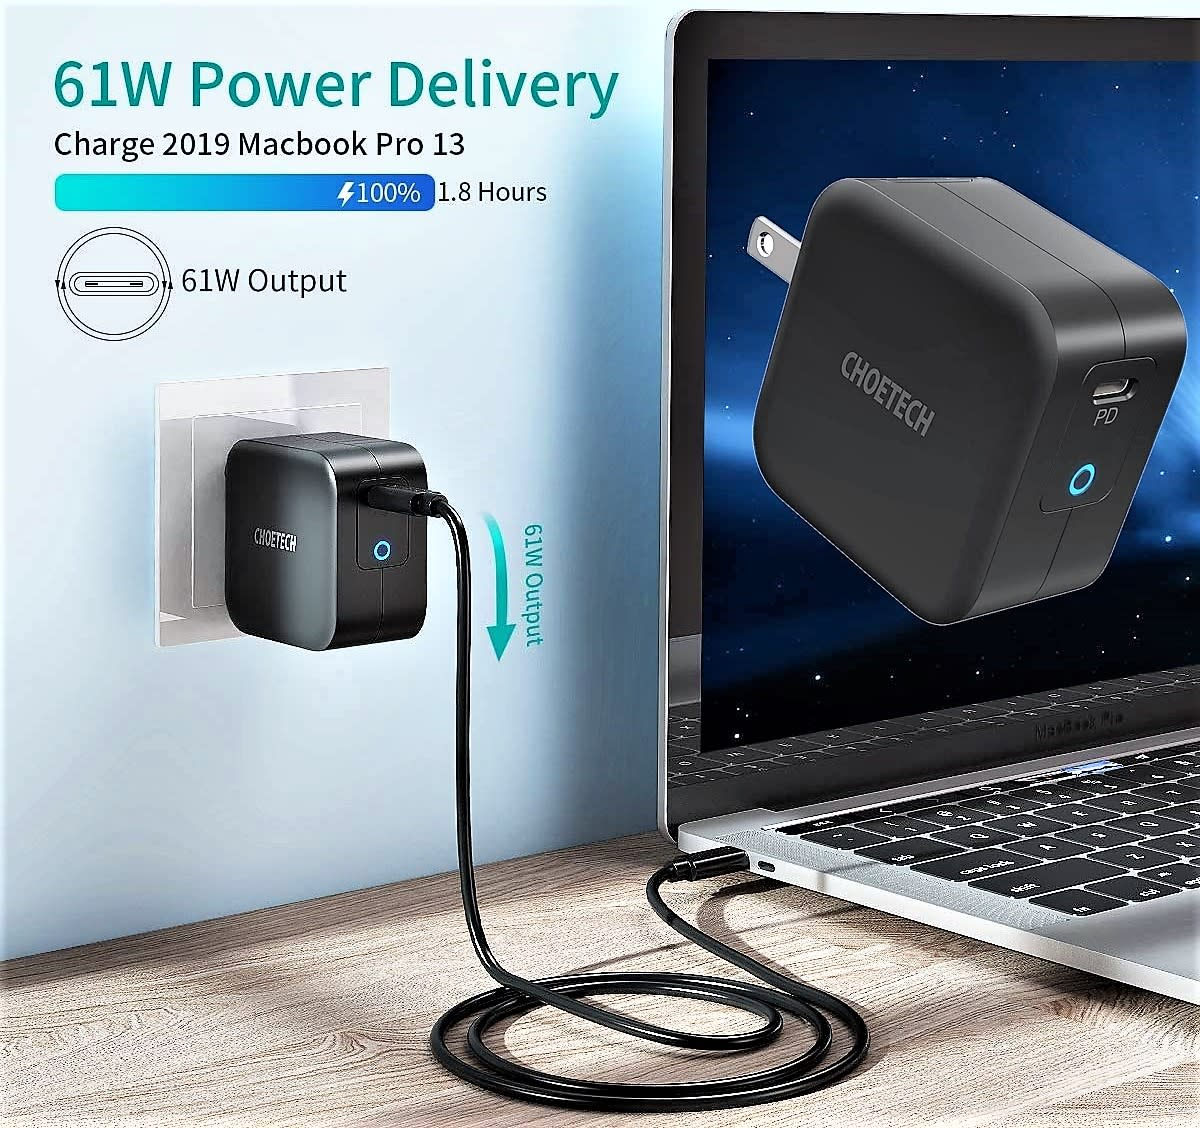 Choetech 61W USB-C Mini Charger Review: Max Power in a Tiny Size